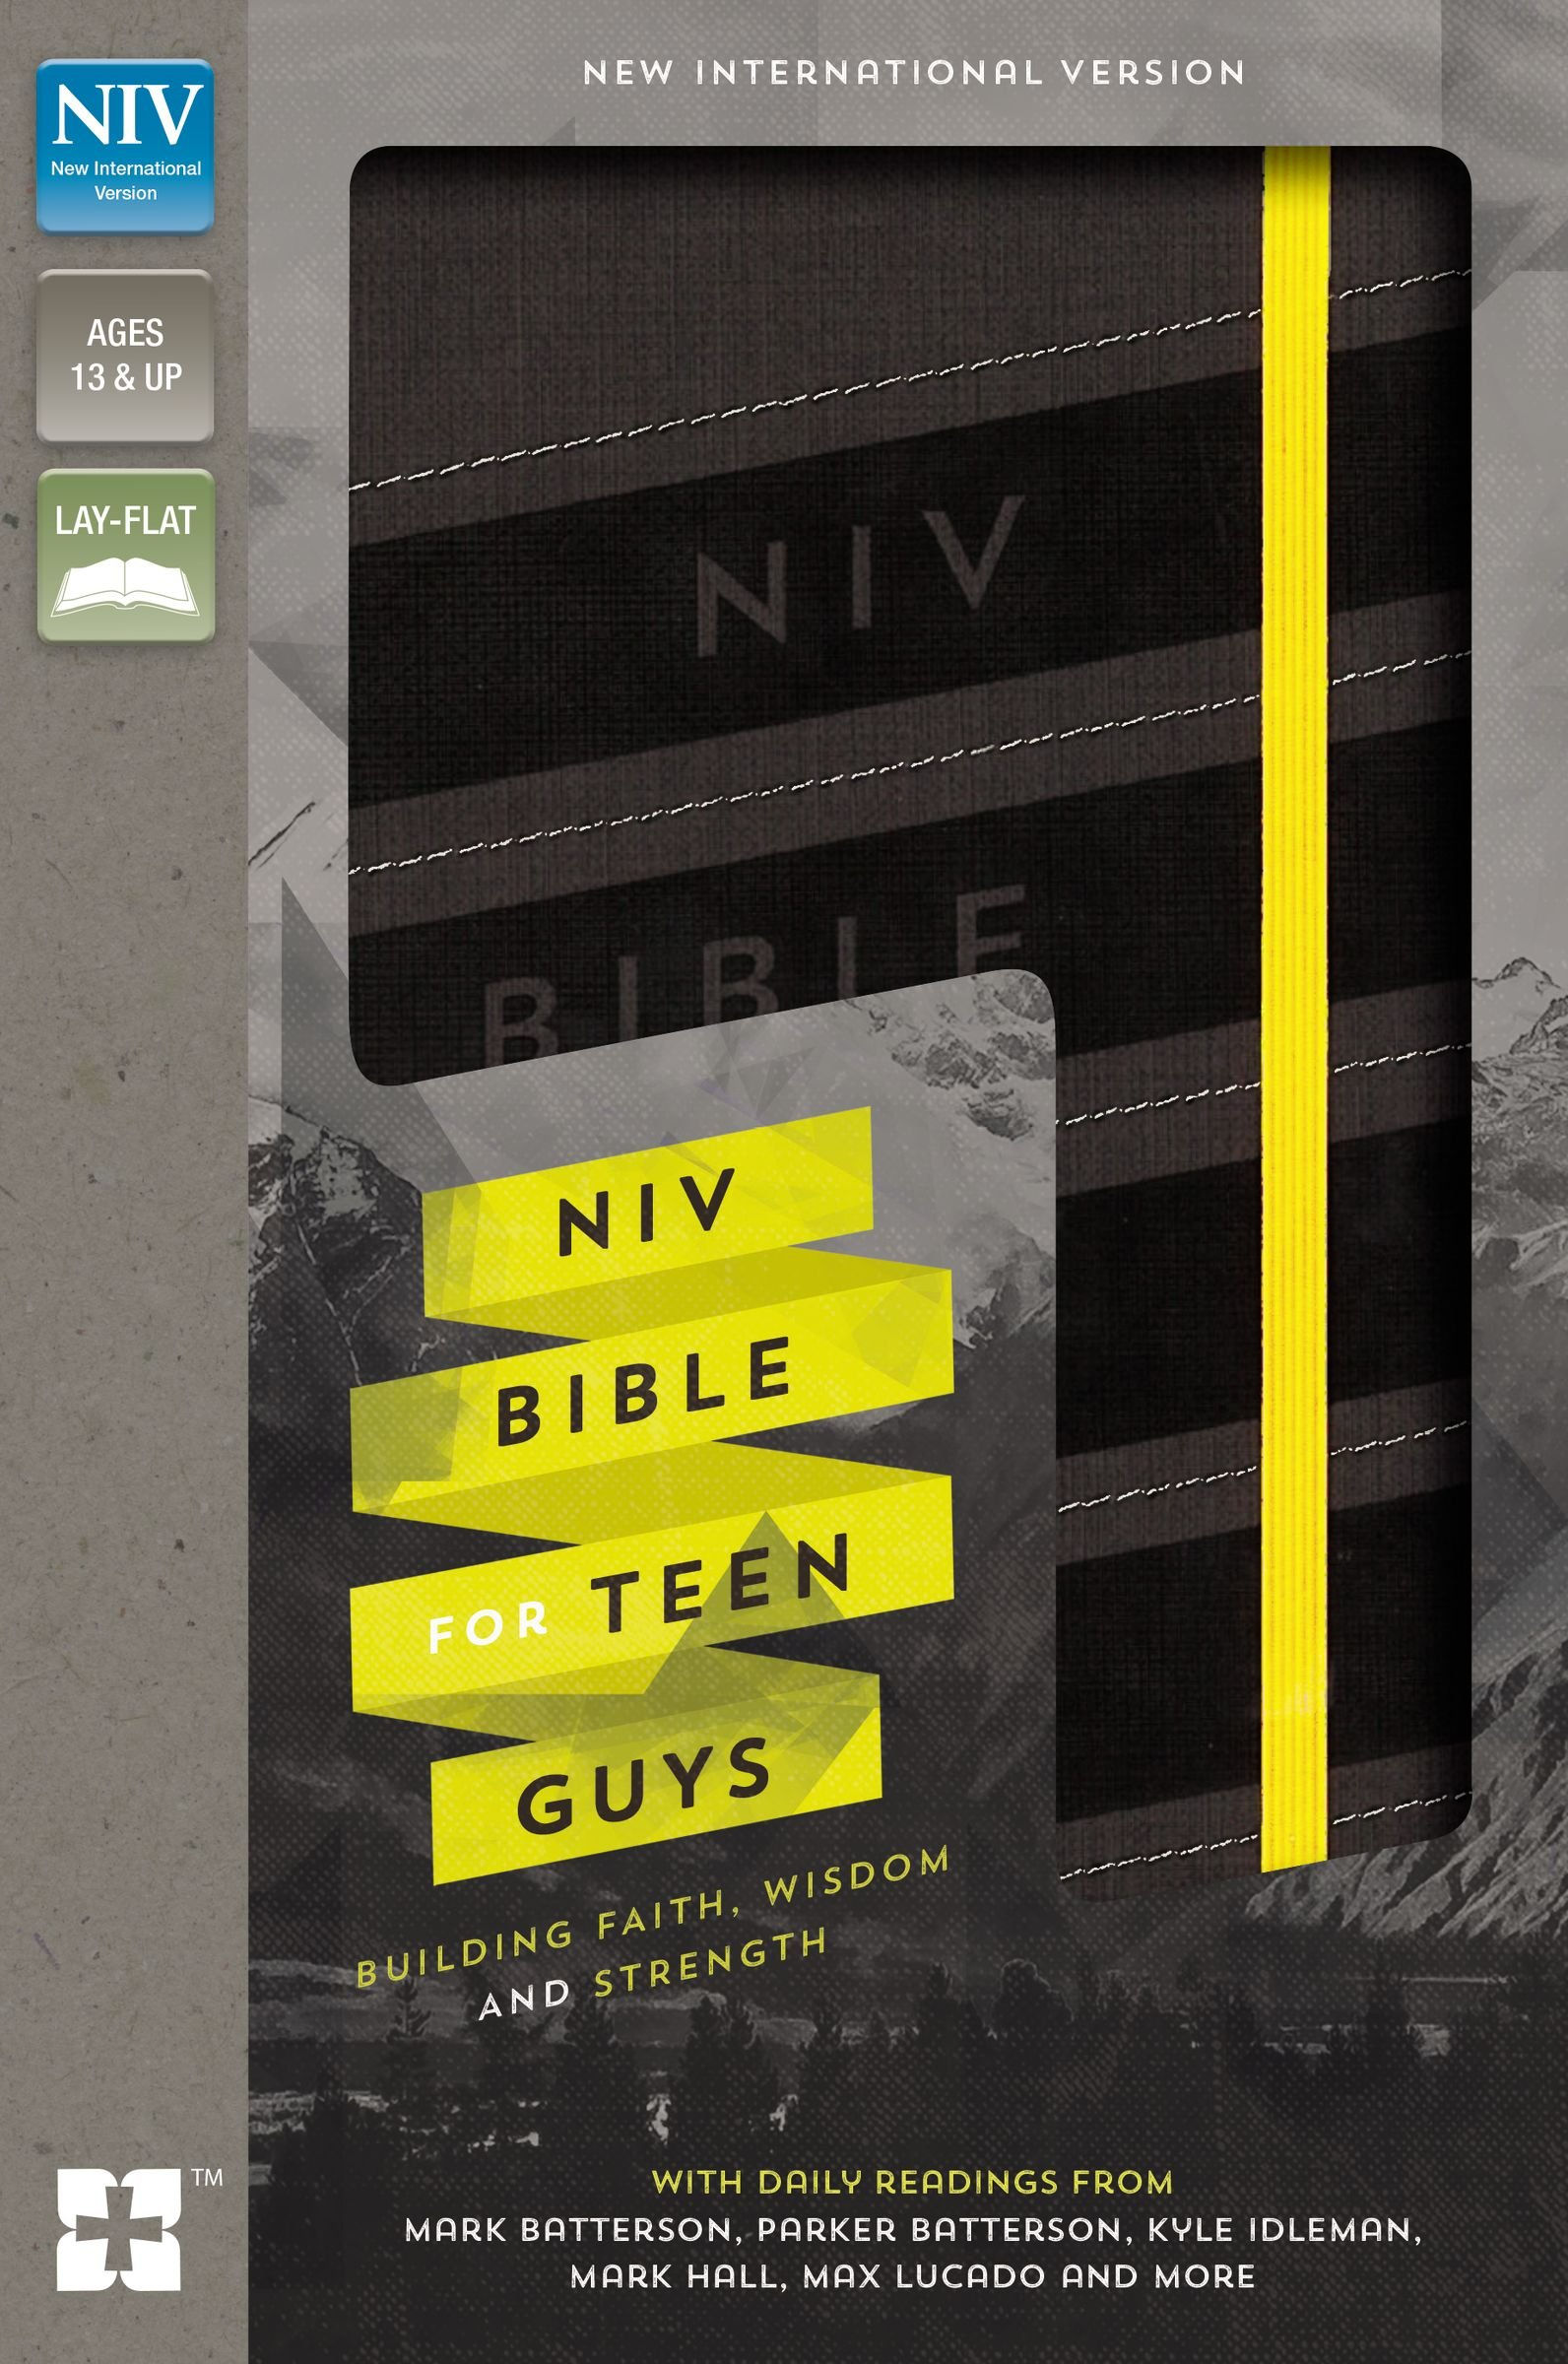 NIV, Bible for Teen Guys, Leathersoft, Charcoal, Elastic Closure: Building Faith, Wisdom and Strength by HarperCollins Christian Pub.